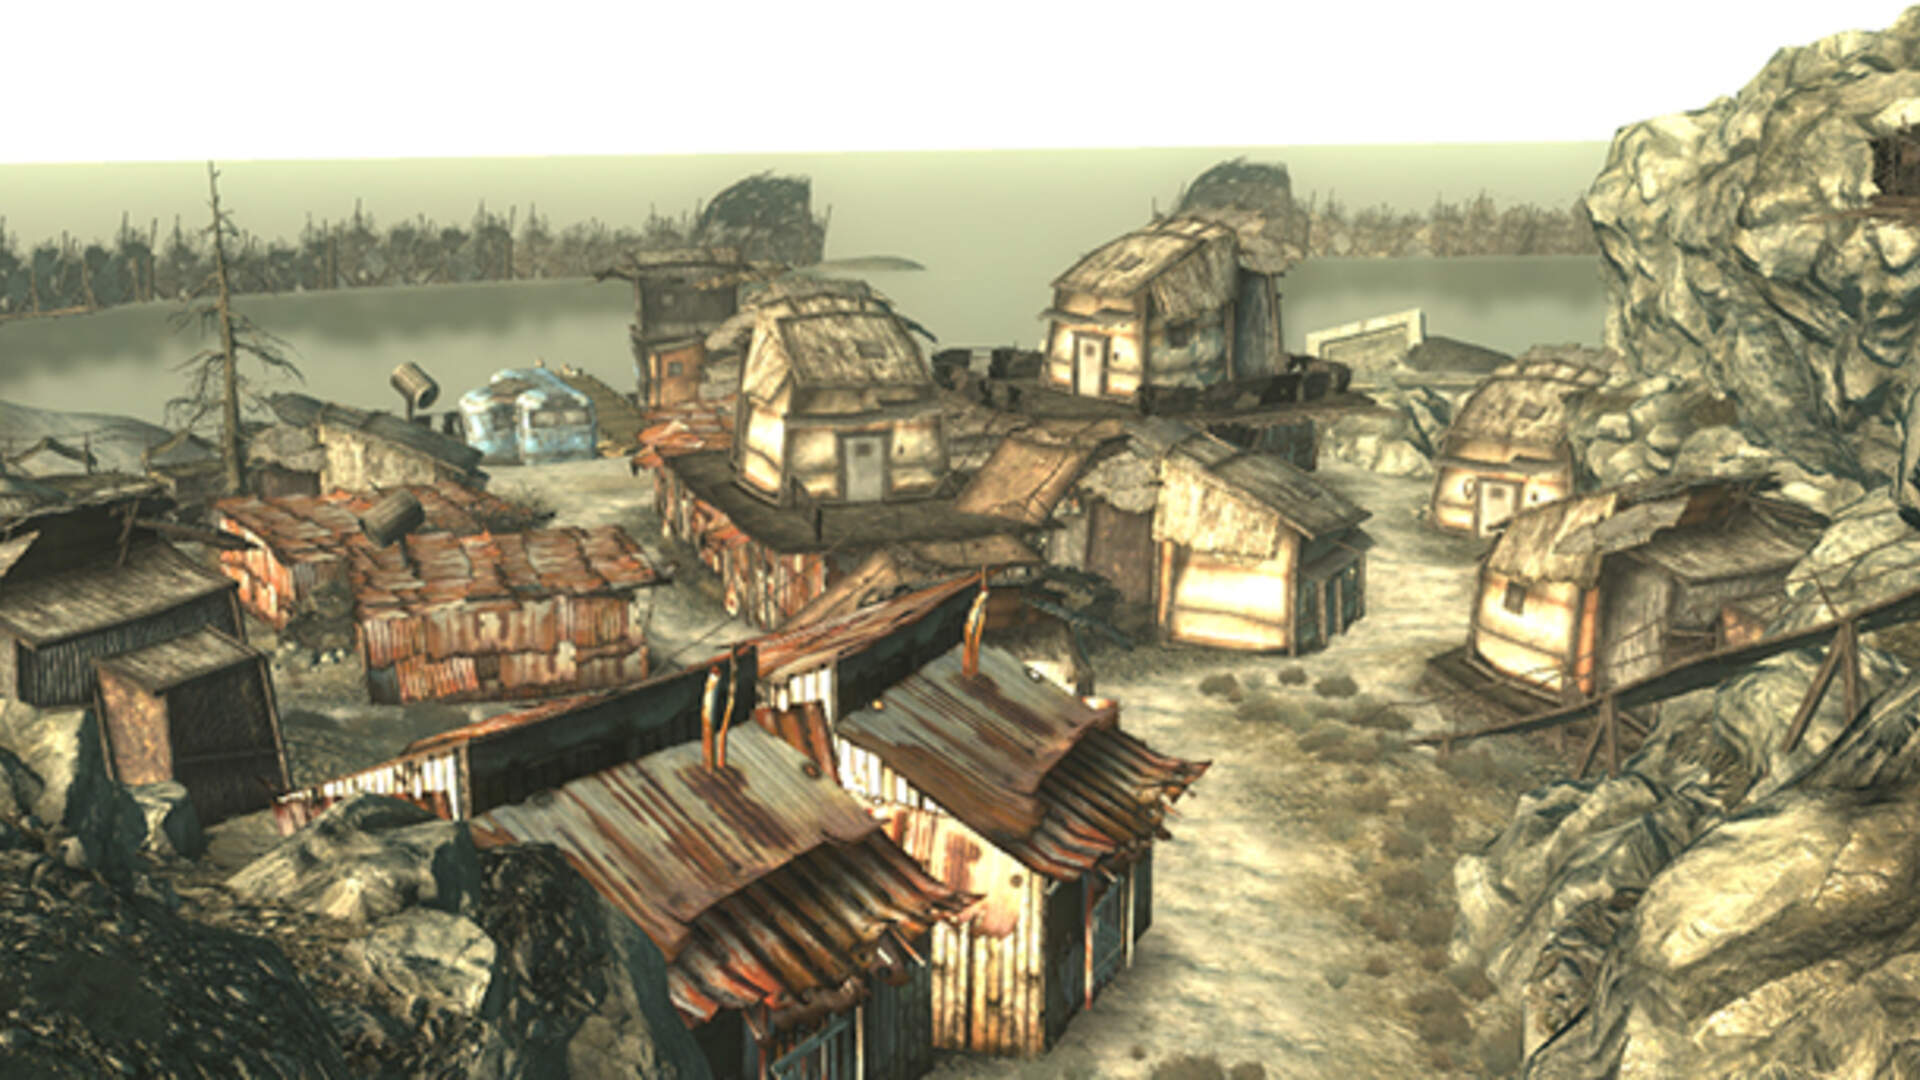 Fallout 3 Gets a Massive Fully Voice-Acted Quest Courtesy of a Single Dedicated Modder